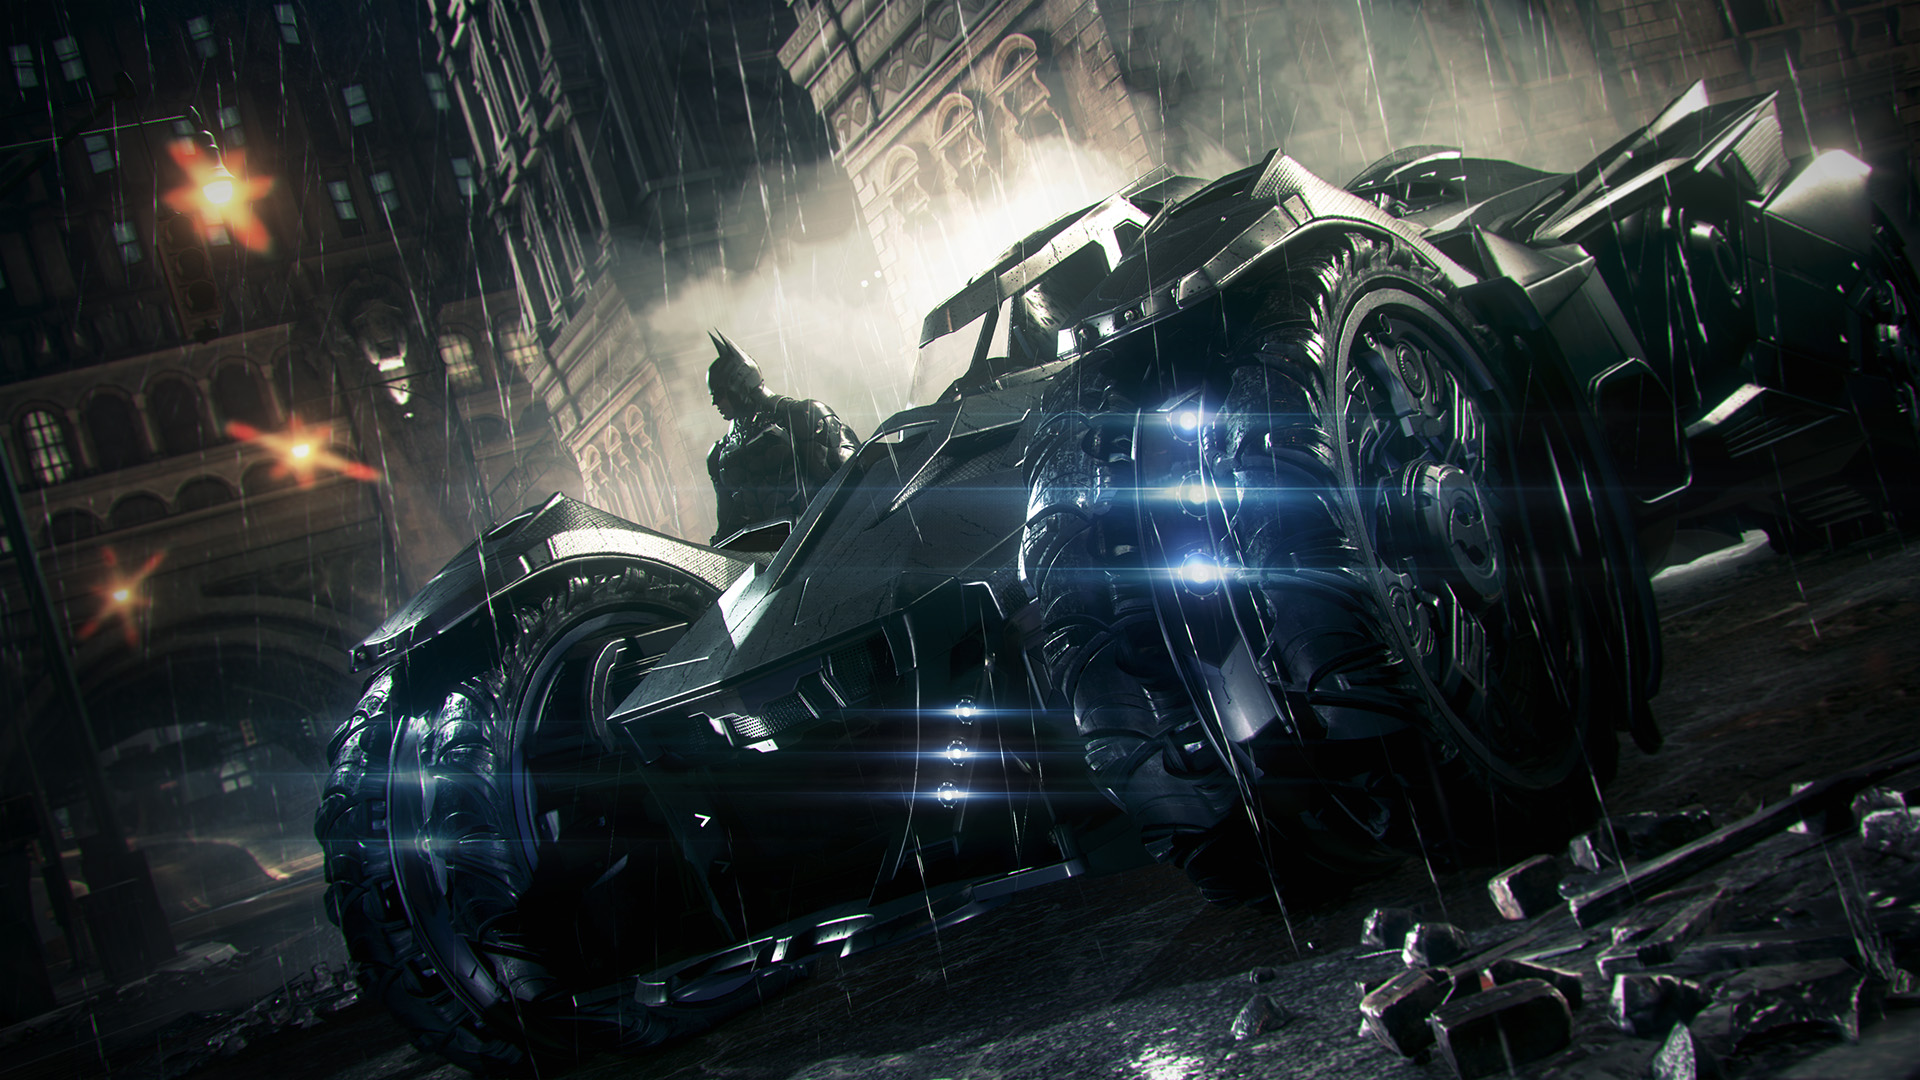 'Batman: Arkham Knight' from Rocksteady